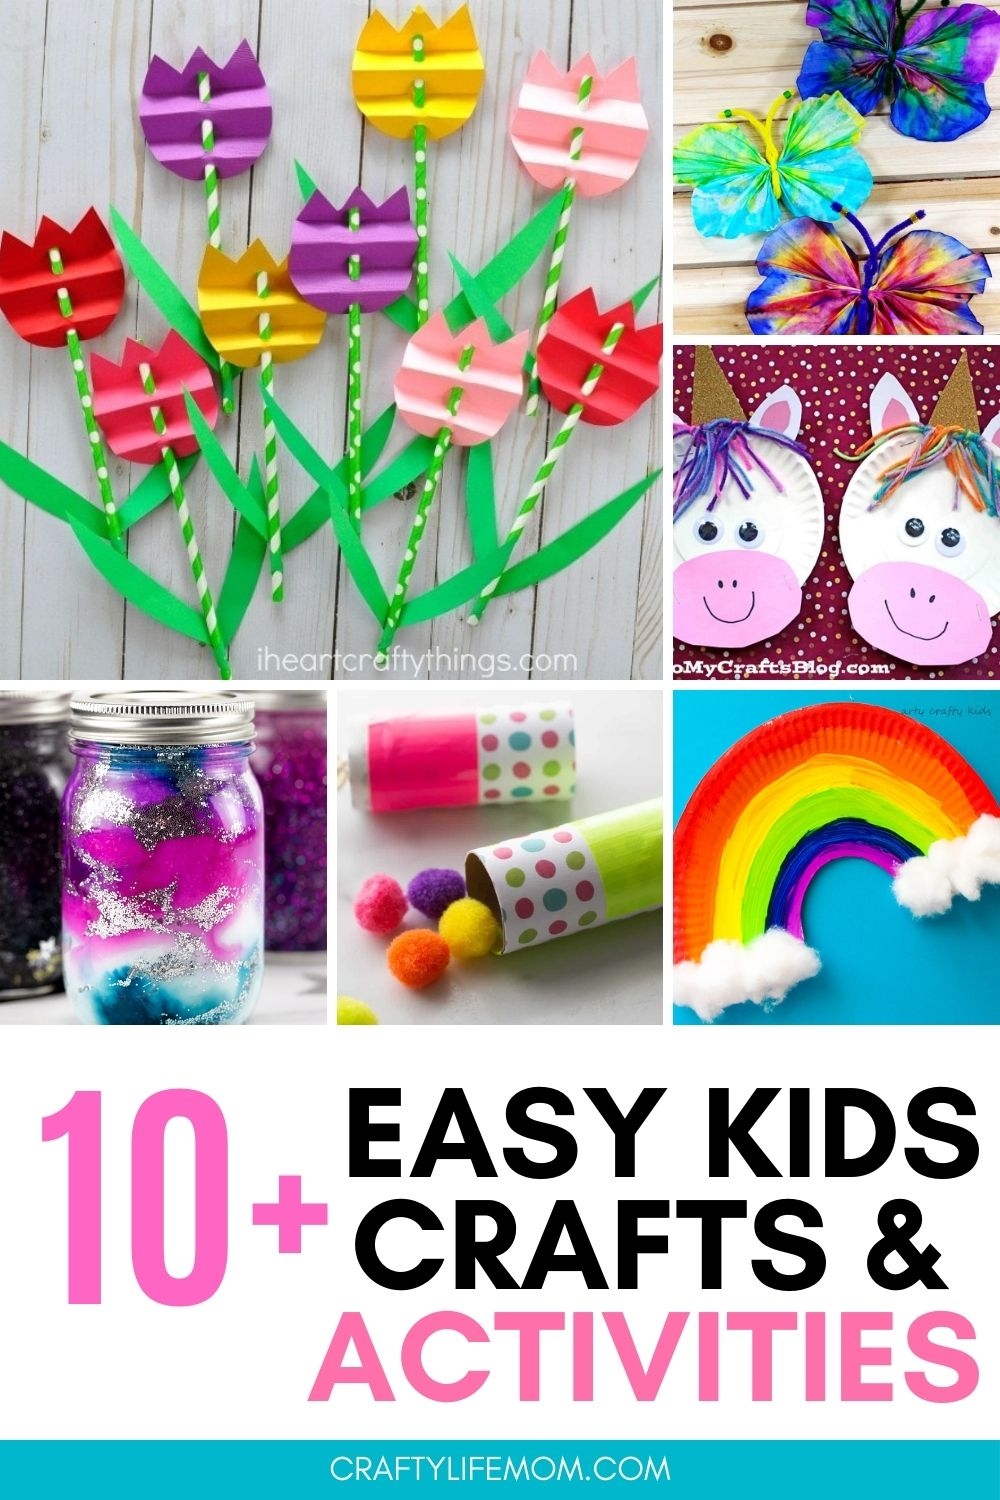 10+ Easy Crafts for kids to make and create. No special tools or skills are required. These crafts are for anyone to make with kids!